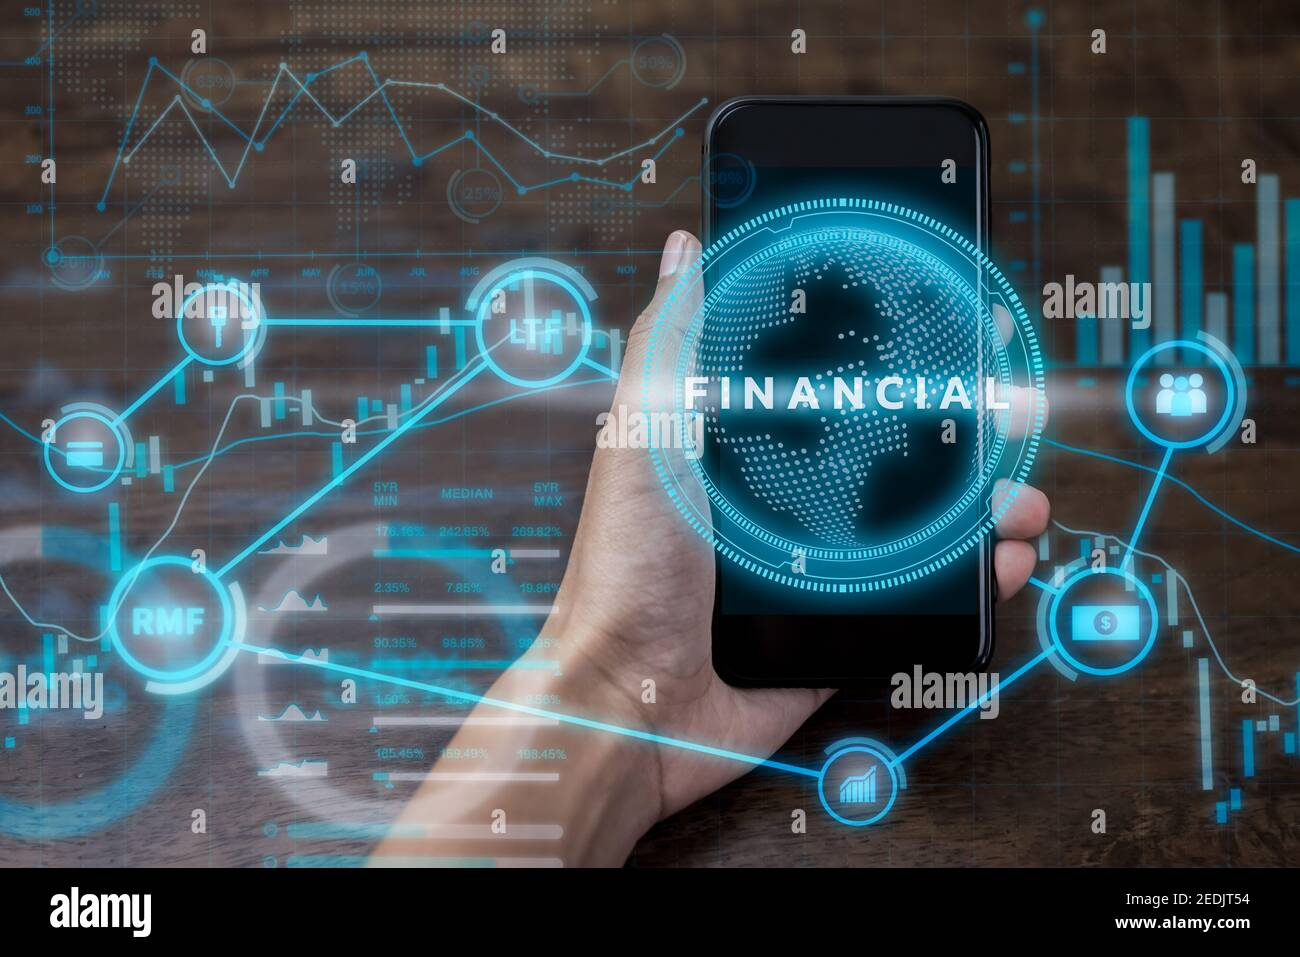 Hand holding smartphone with  futuristic online financial and investment technology digital data display, fintech concept Stock Photo